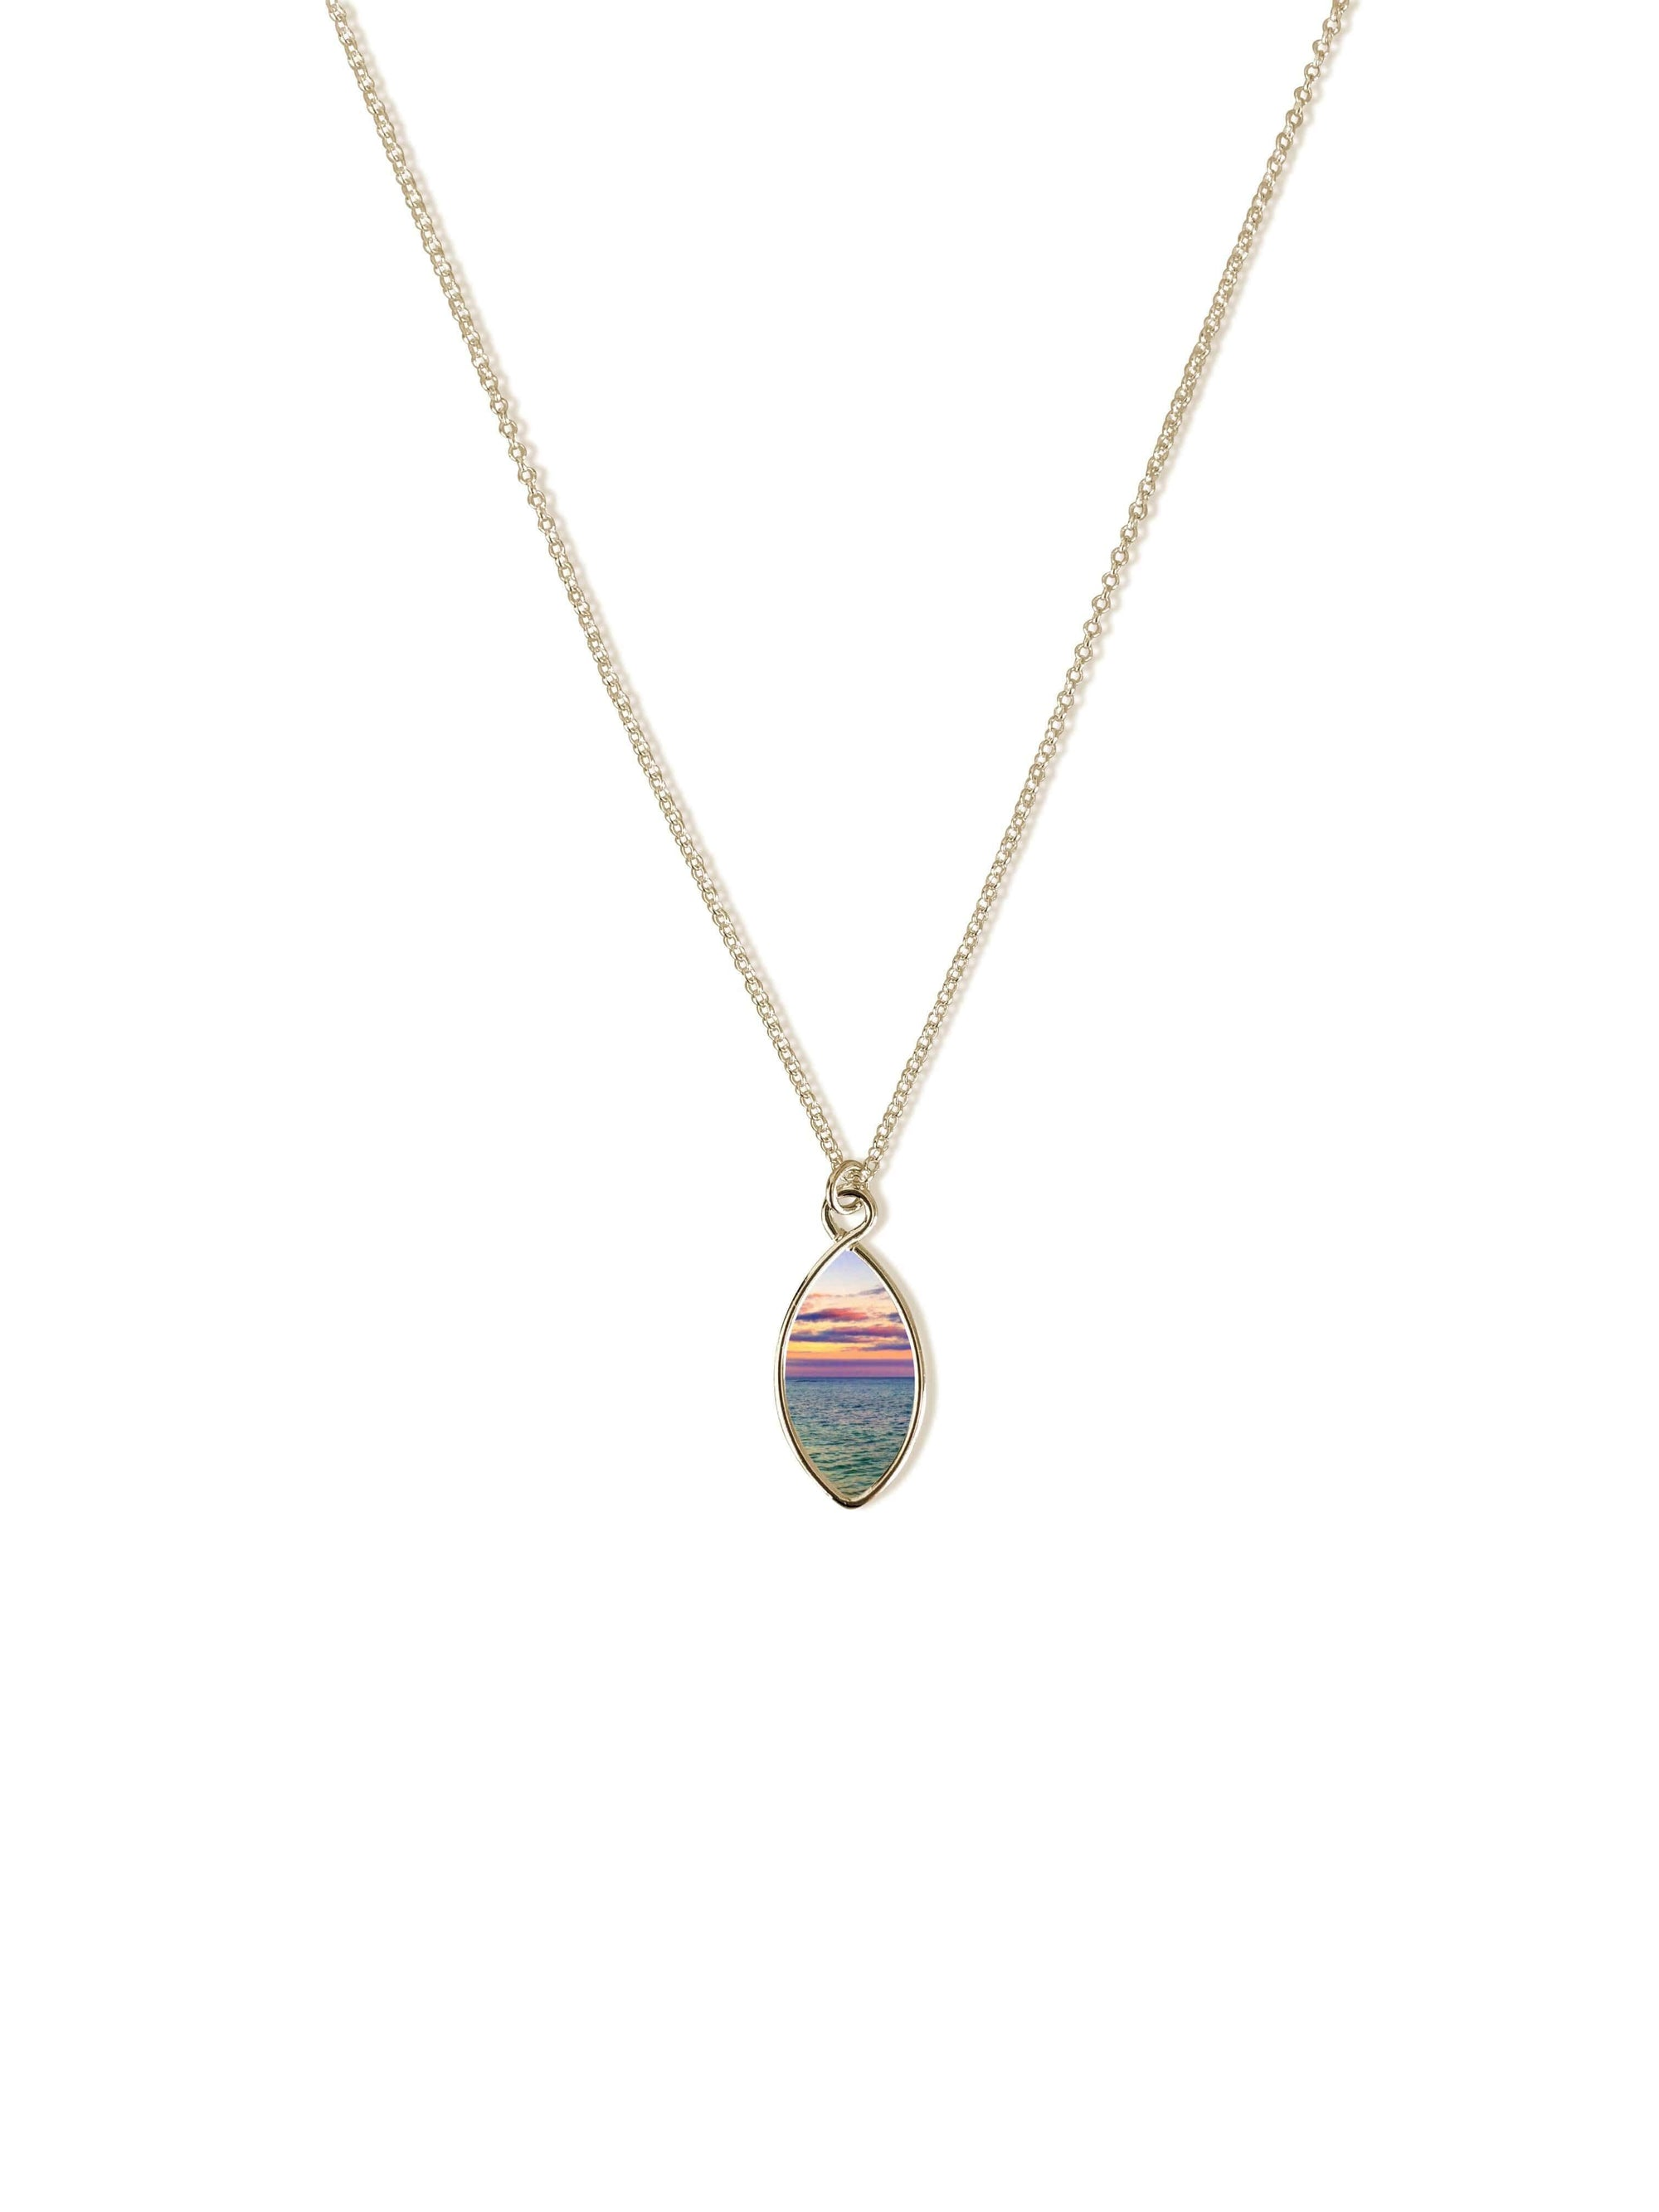 Foterra Jewelry Necklace